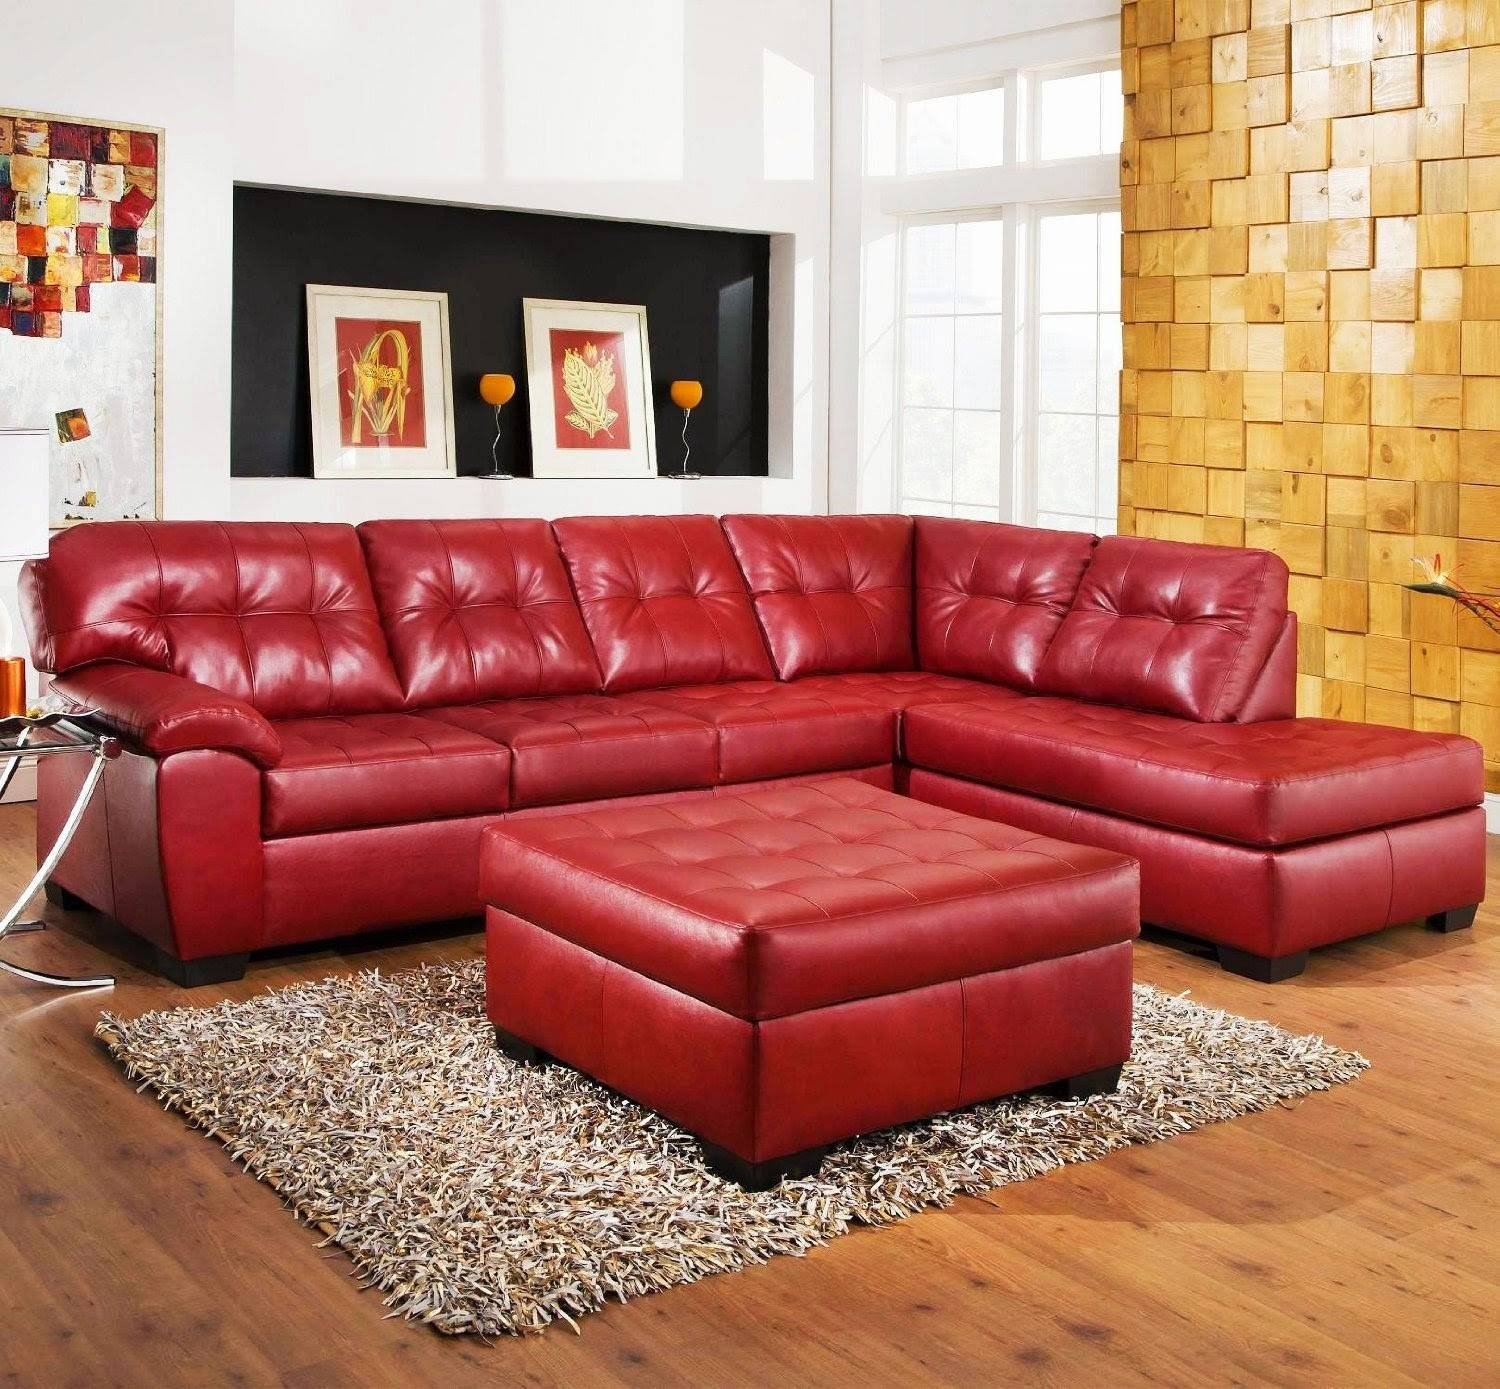 Furniture: Comfy Design Of Oversized Couch For Charming Living within Large Comfortable Sectional Sofas (Image 9 of 25)